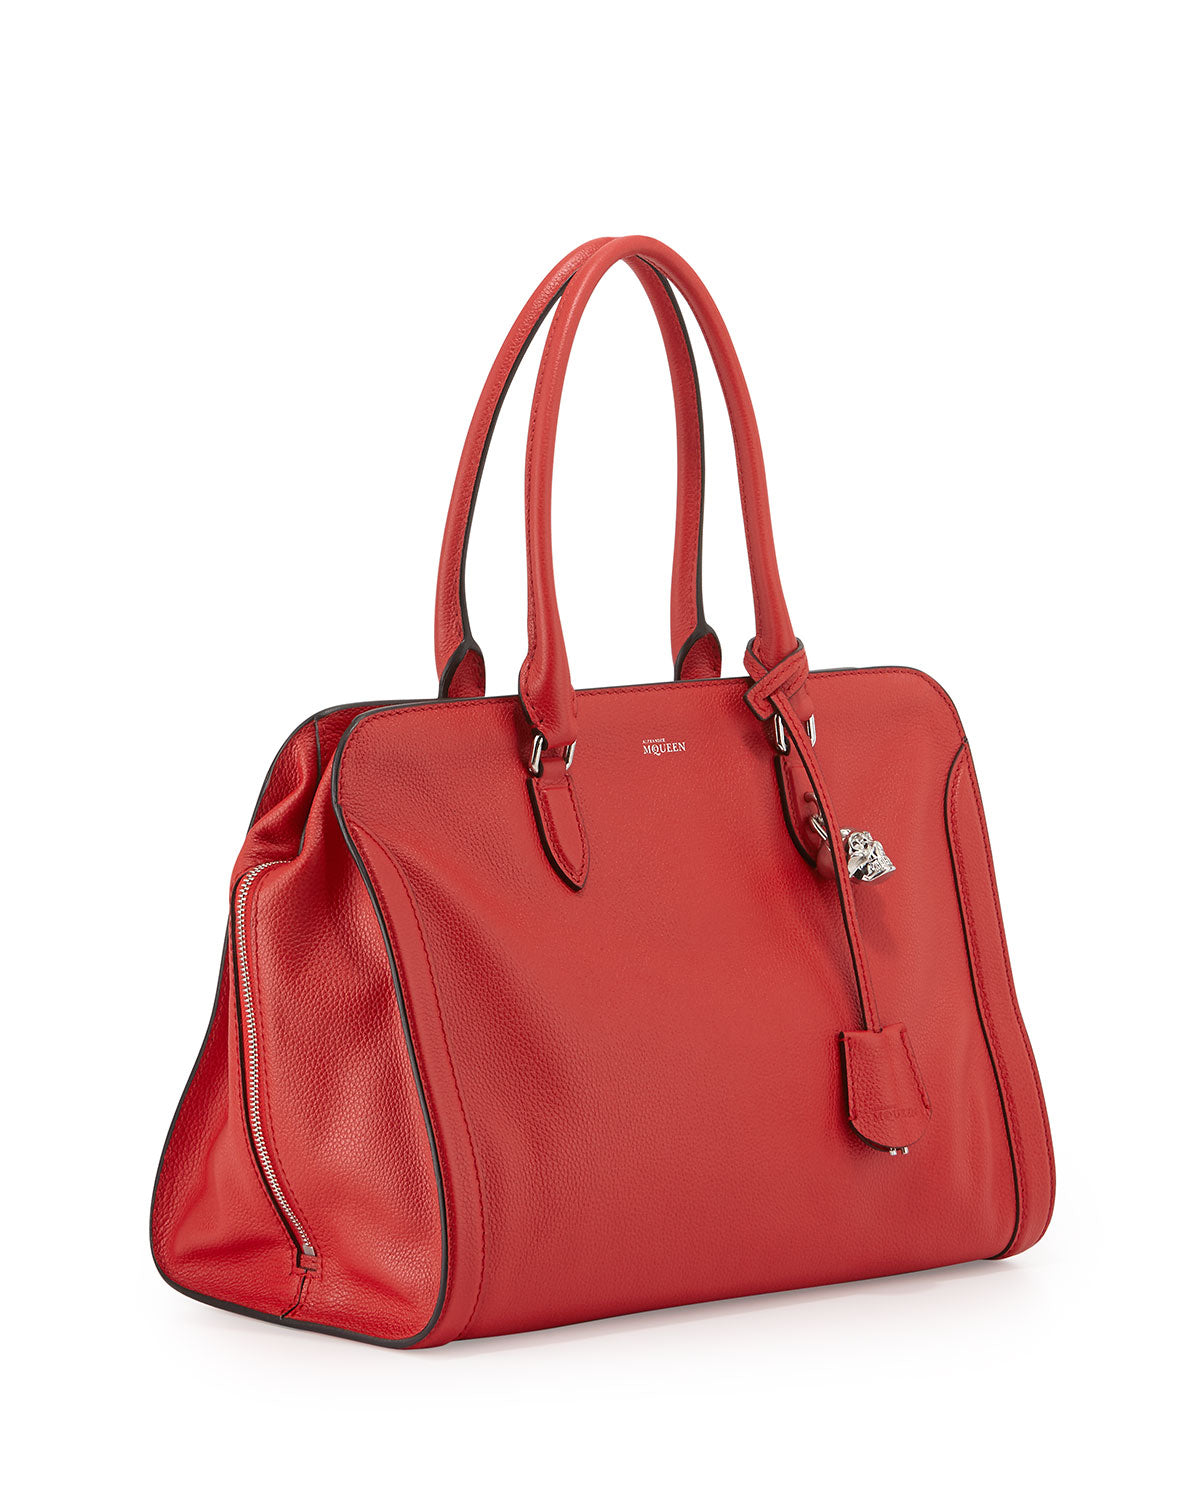 Bag McqueenRed Leather The Padlock Satchel Velvet Alexander Inc shdCtrQx